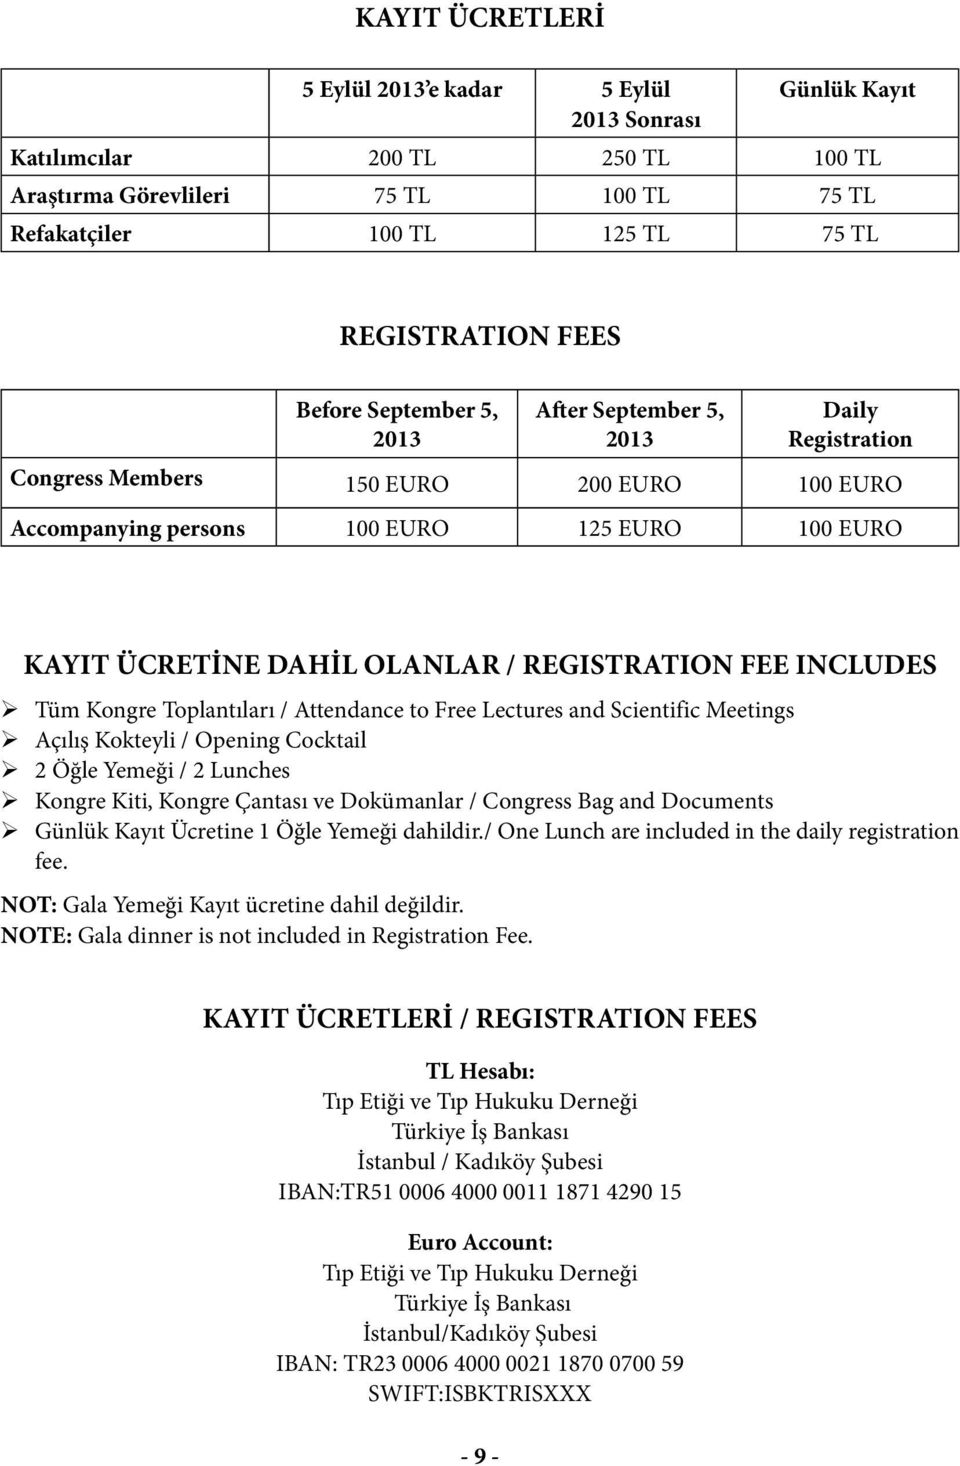 REGISTRATION FEE INCLUDES Tüm Kongre Toplantıları / Attendance to Free Lectures and Scientific Meetings Açılış Kokteyli / Opening Cocktail 2 Öğle Yemeği / 2 Lunches Kongre Kiti, Kongre Çantası ve